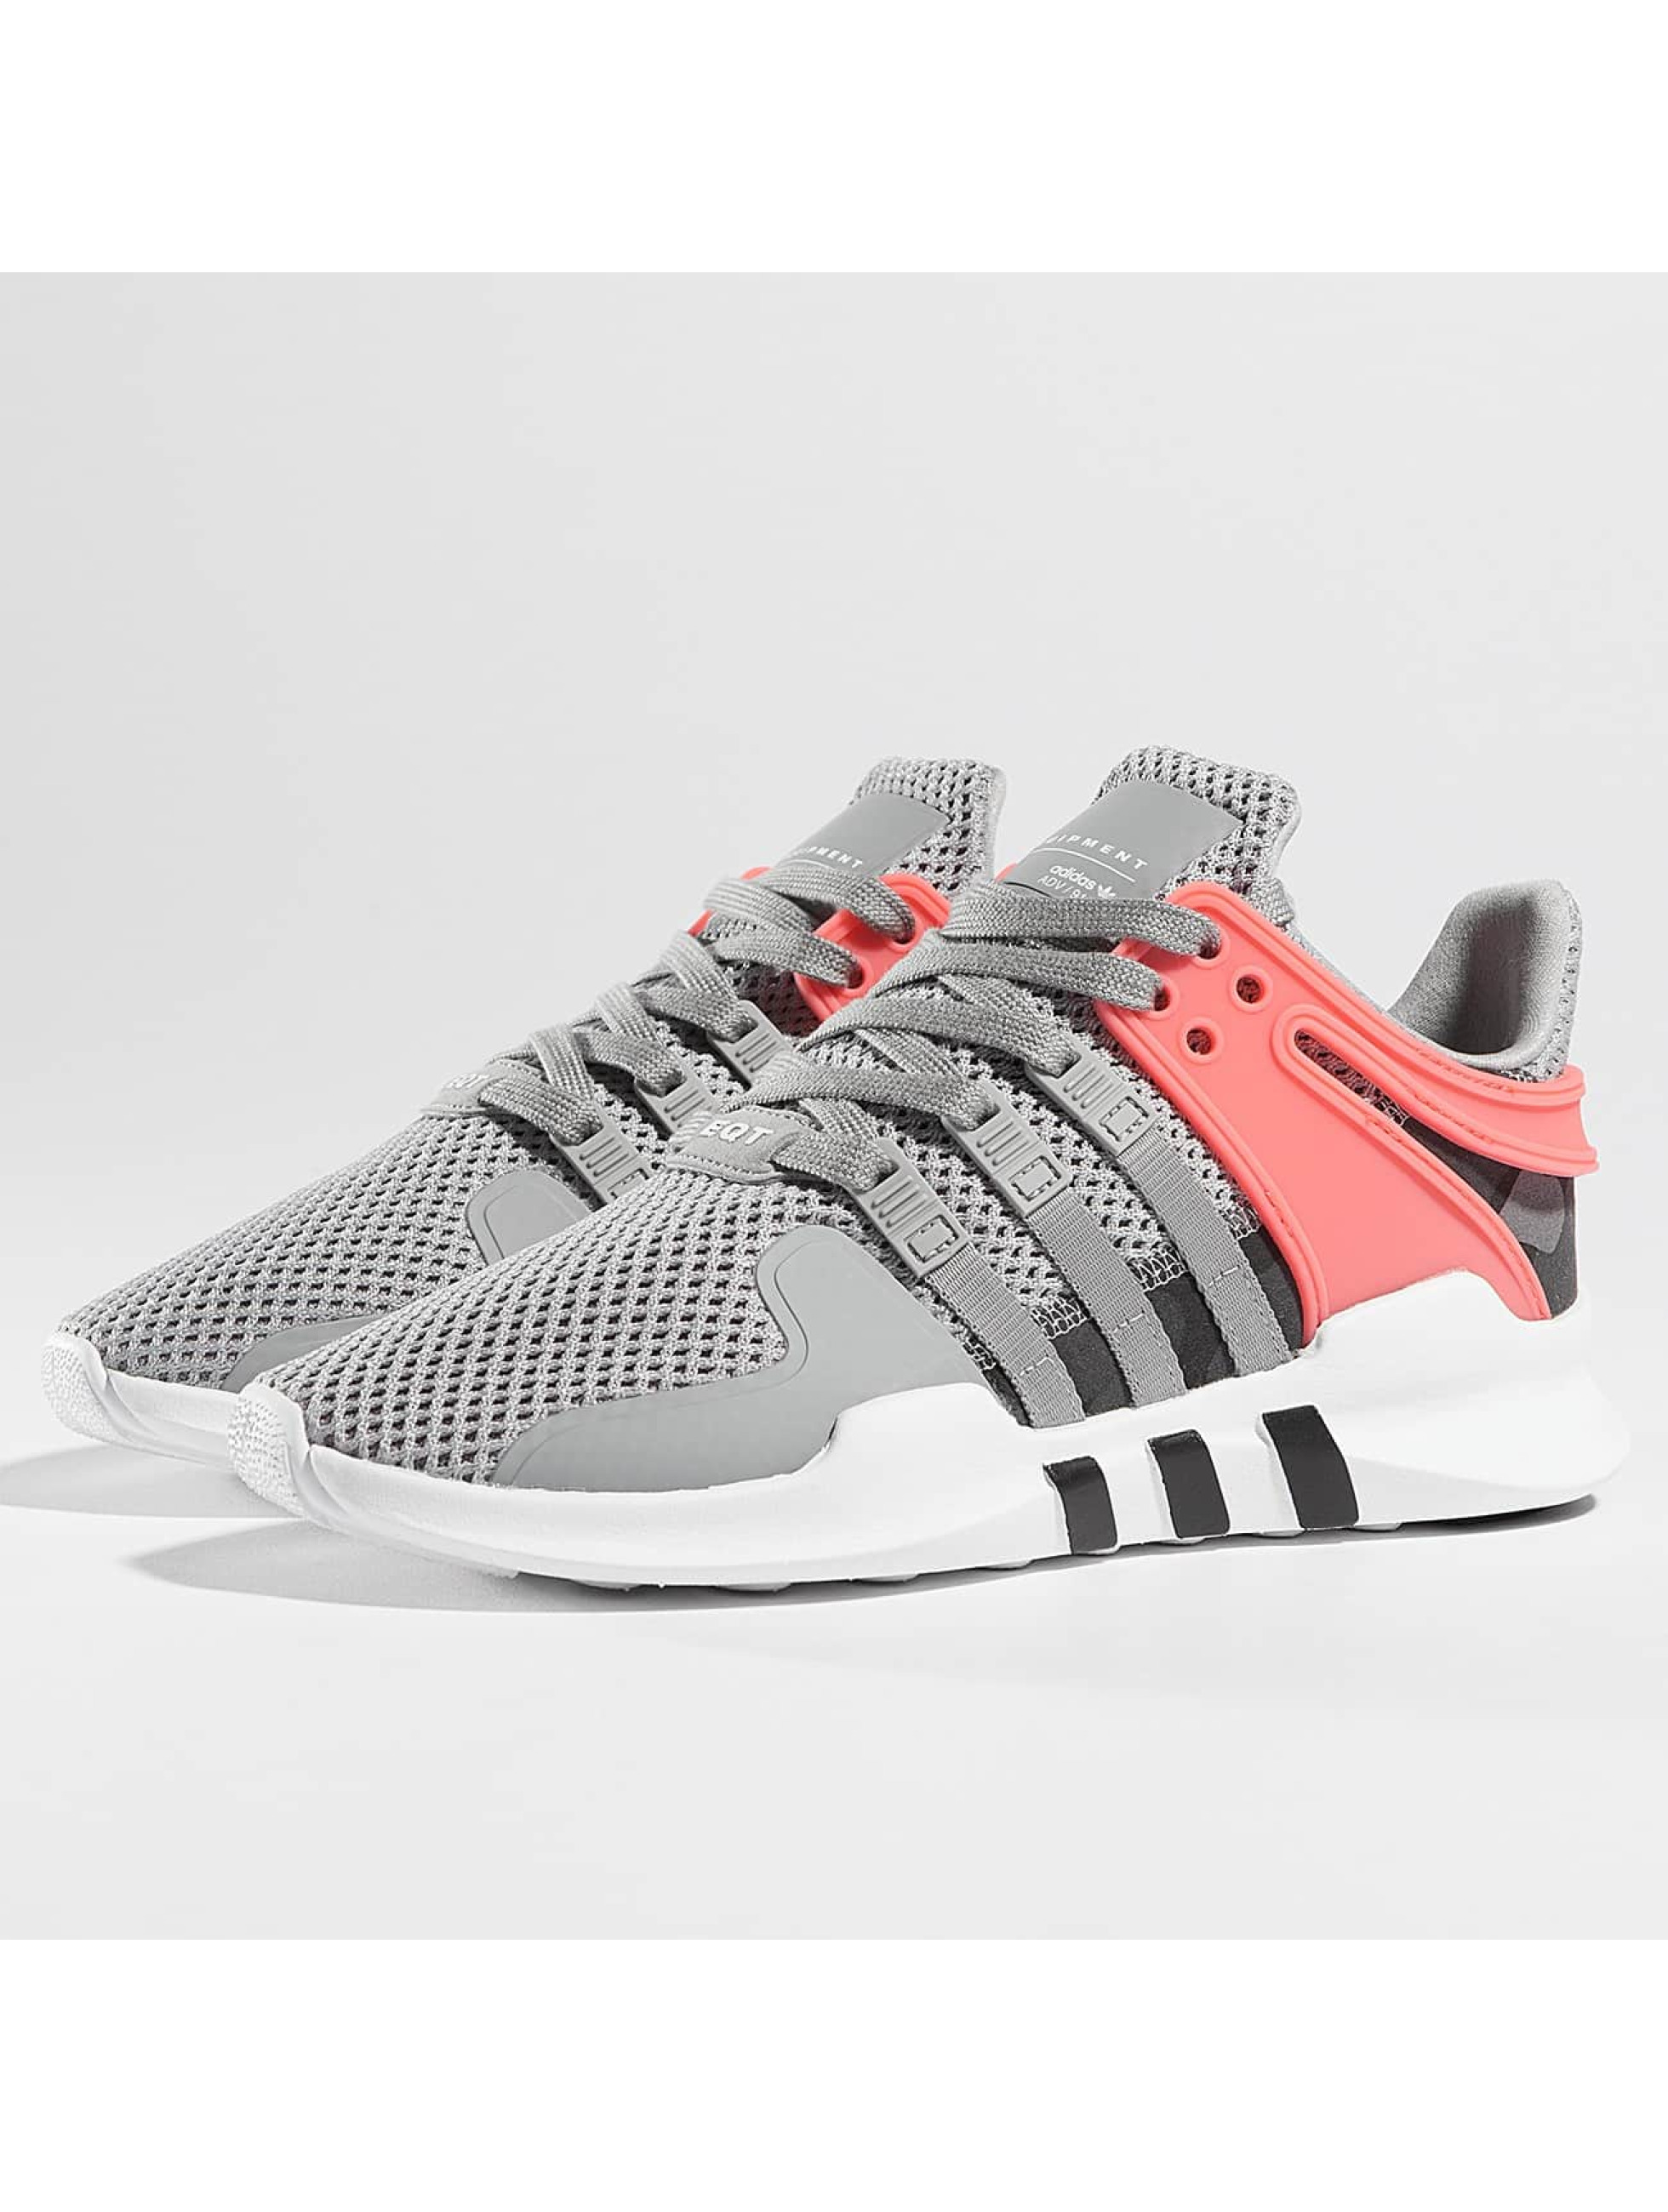 adidas Chaussures / Baskets EQT Support ADV en gris